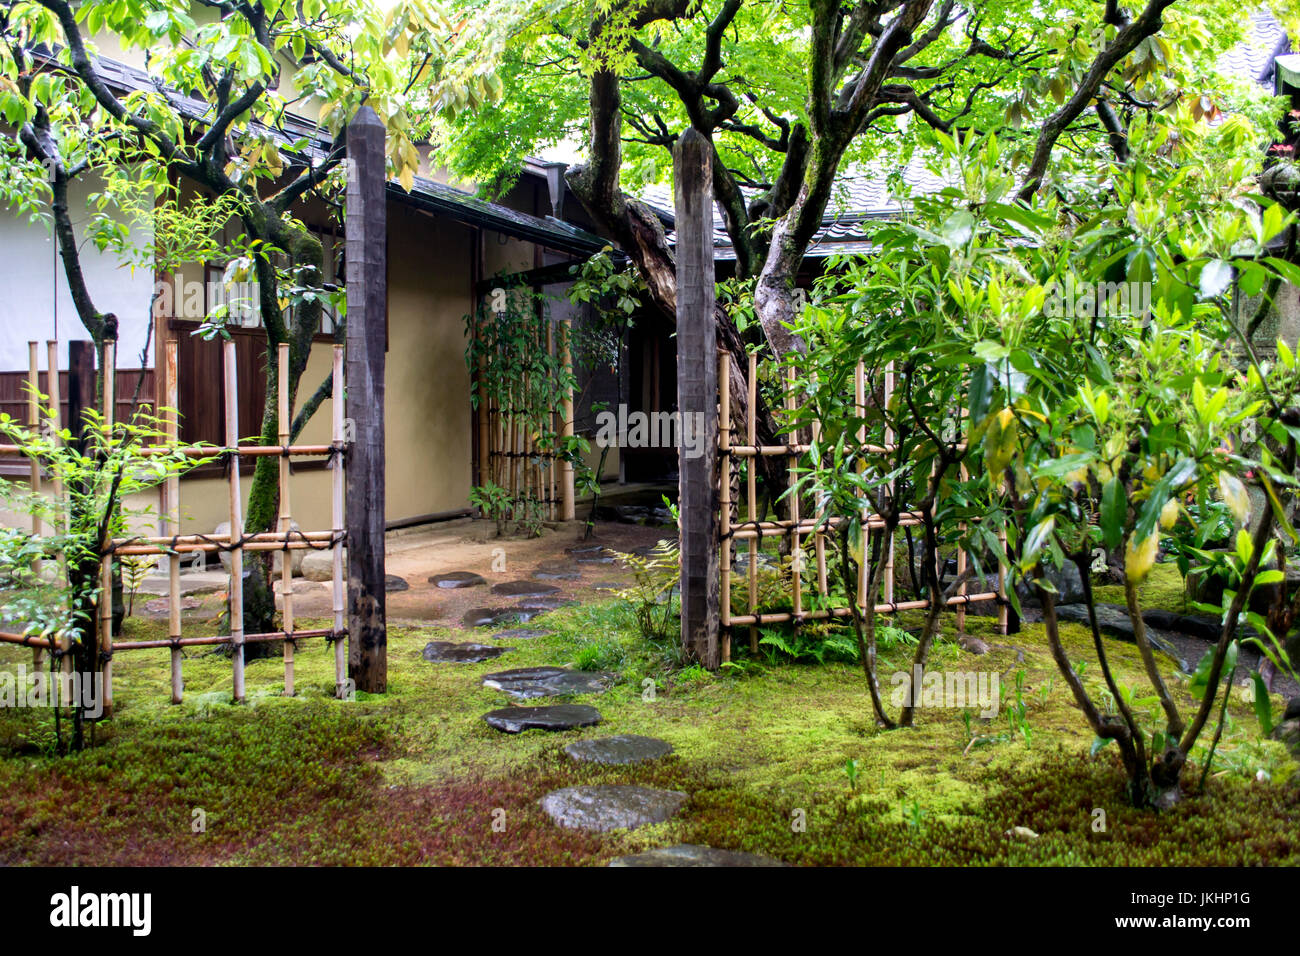 Garden Path in Kyoto, Japan - Stock Image